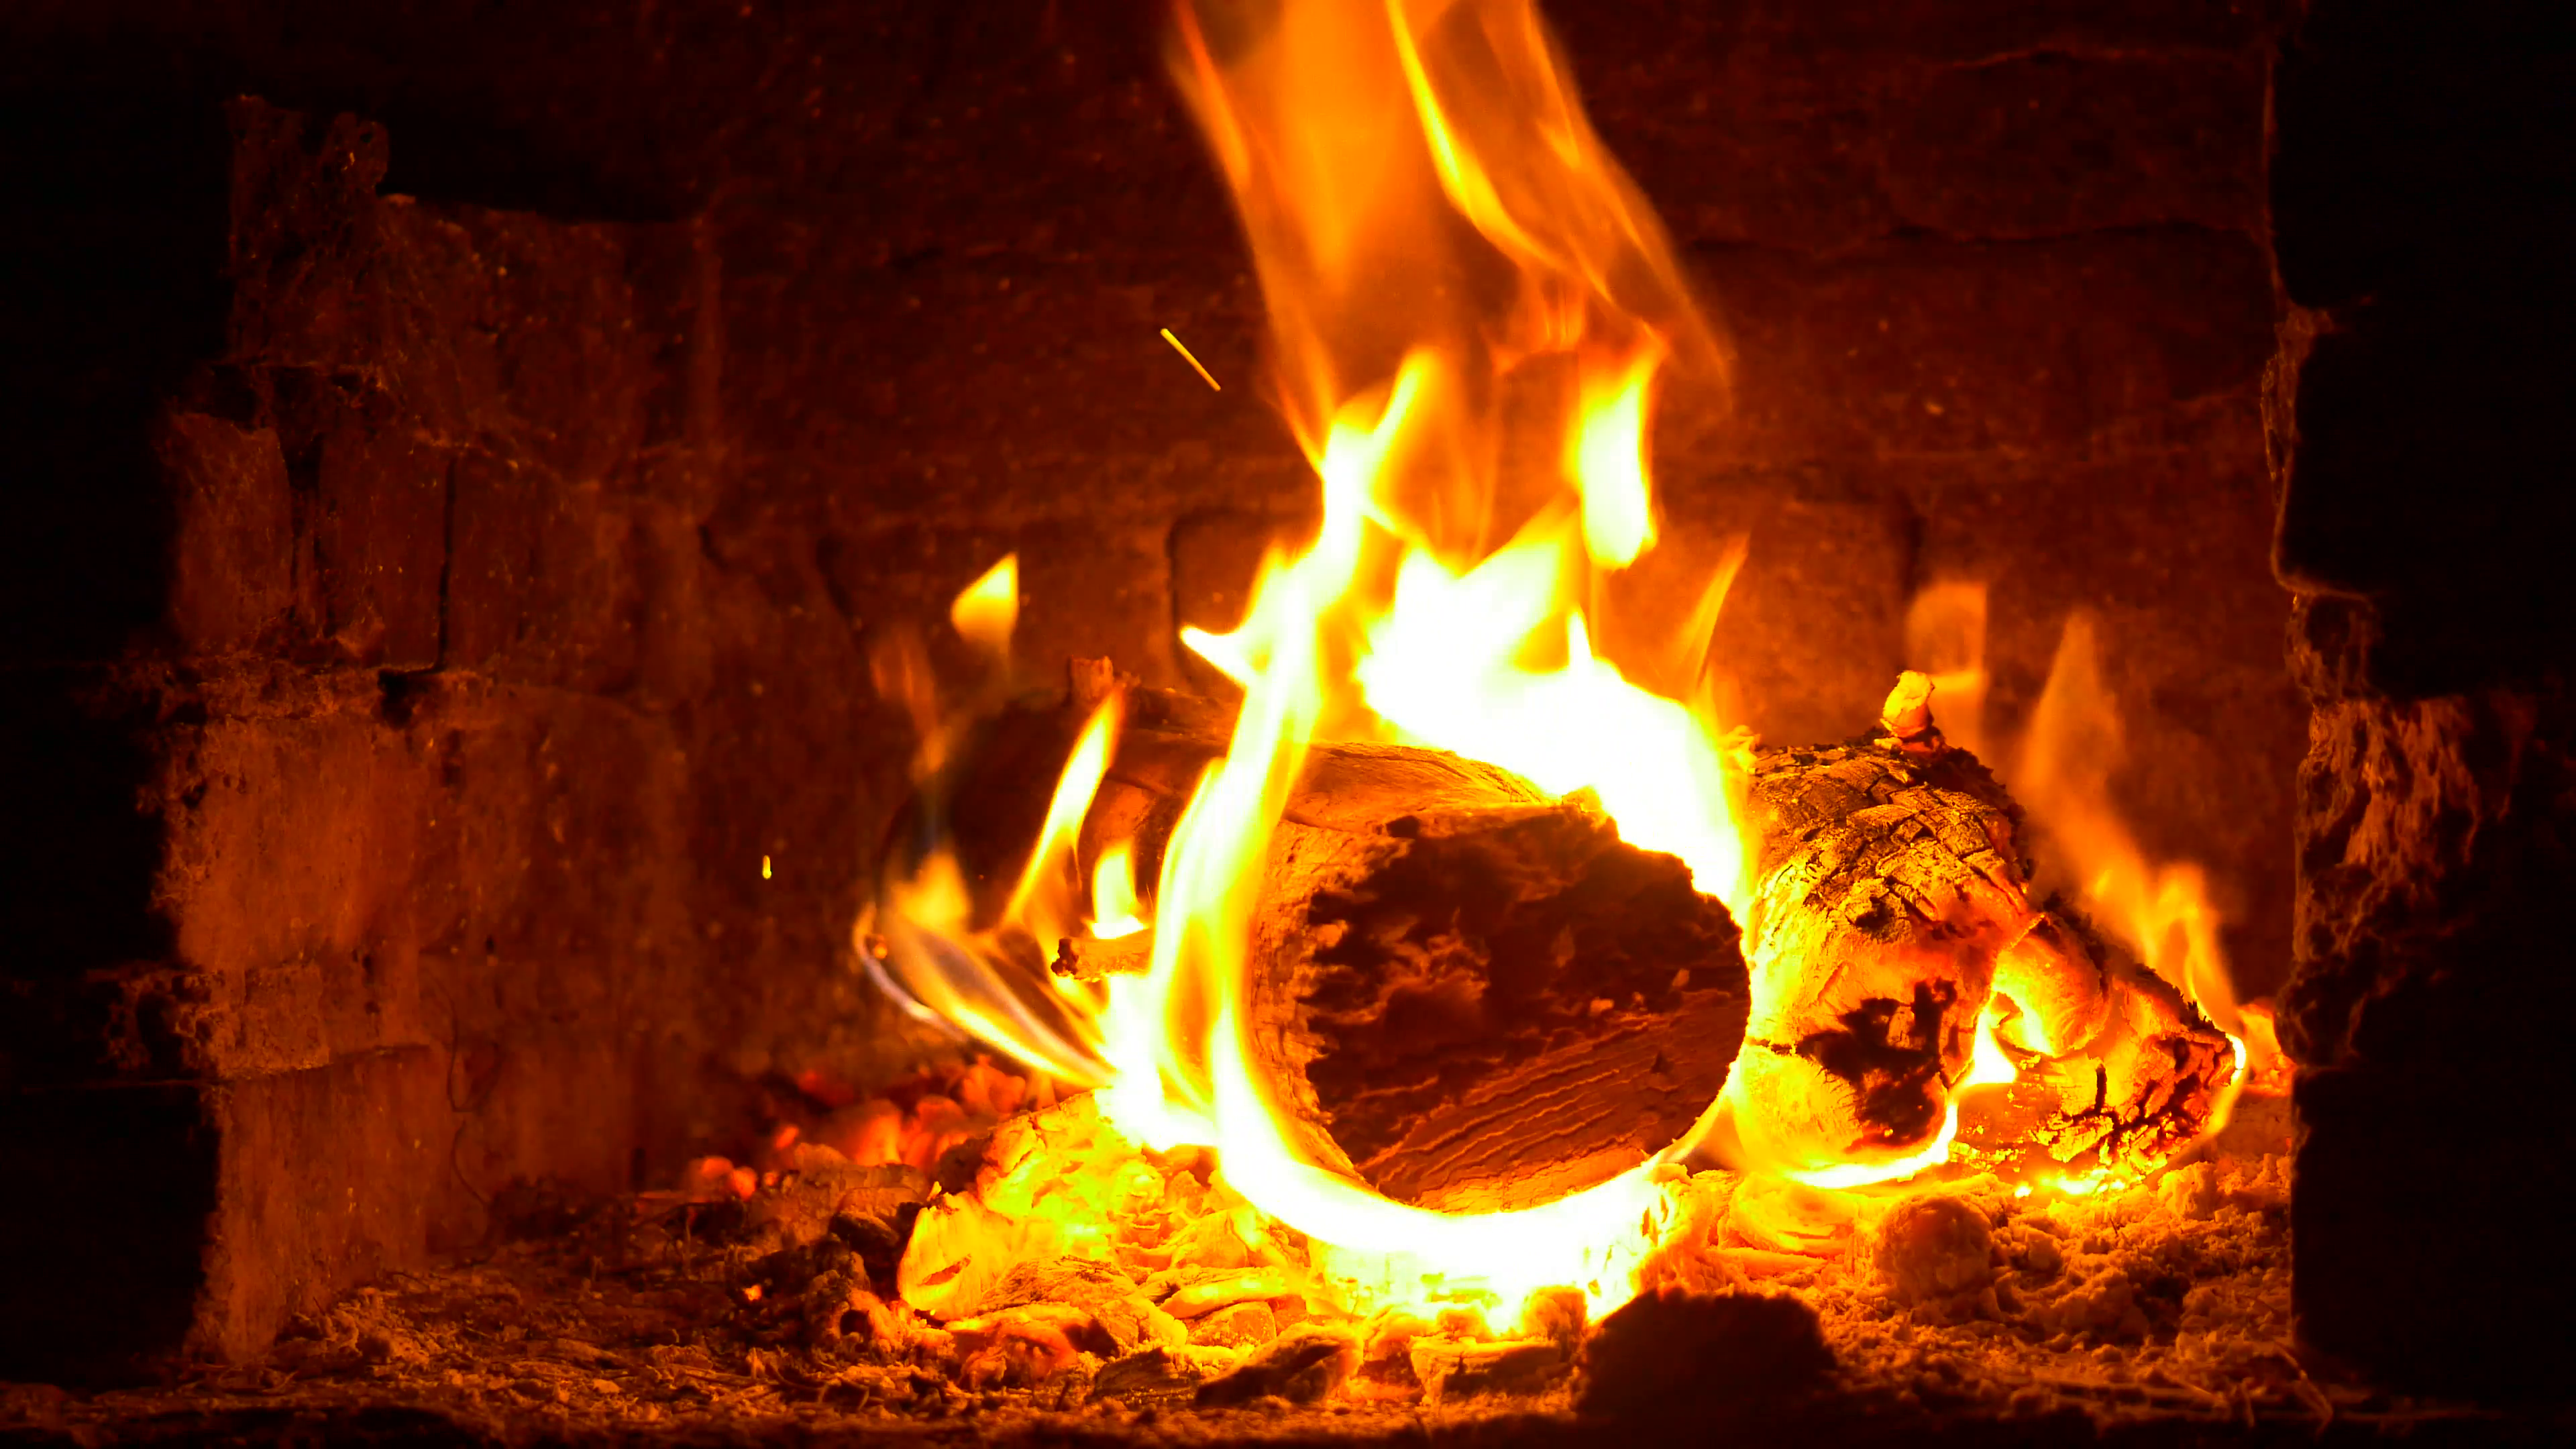 A Warm Fire In A Chimney. 4K. Burning Wood In The Fireplace And The Flames  Stock Video Footage - VideoBlocks - Burning Wood PNG